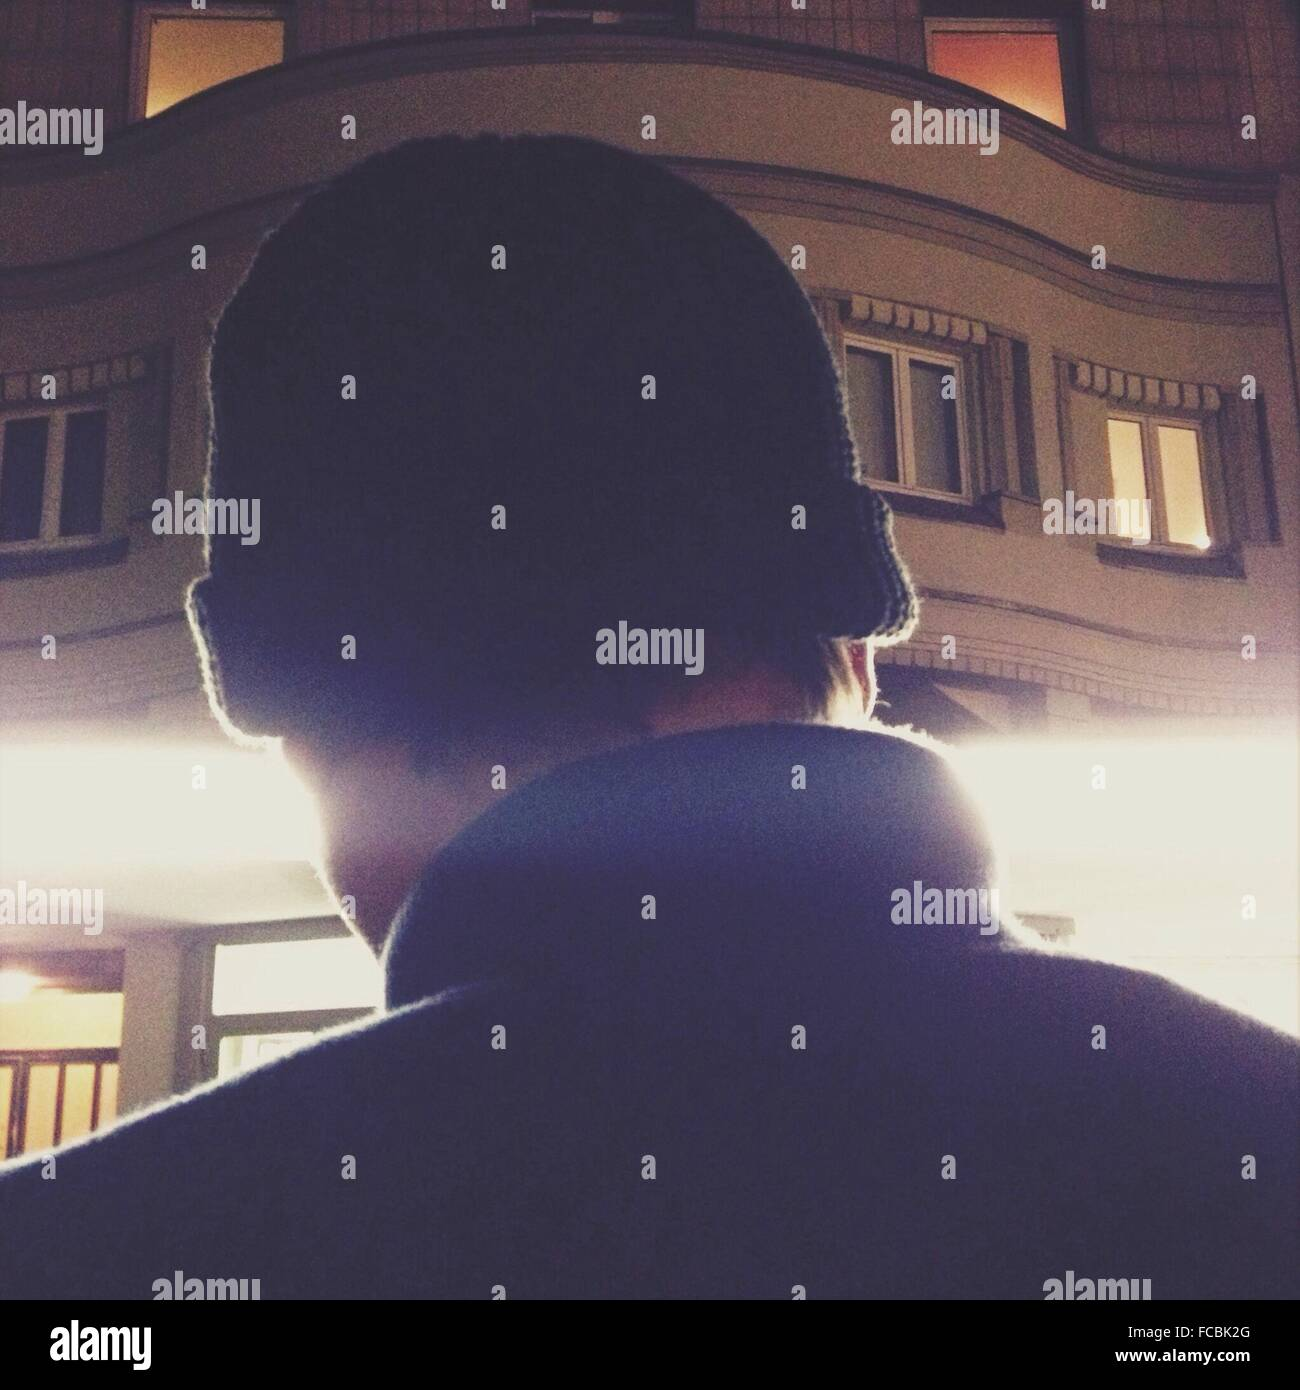 Rear View Of Man In Knit Hat Against Building - Stock Image